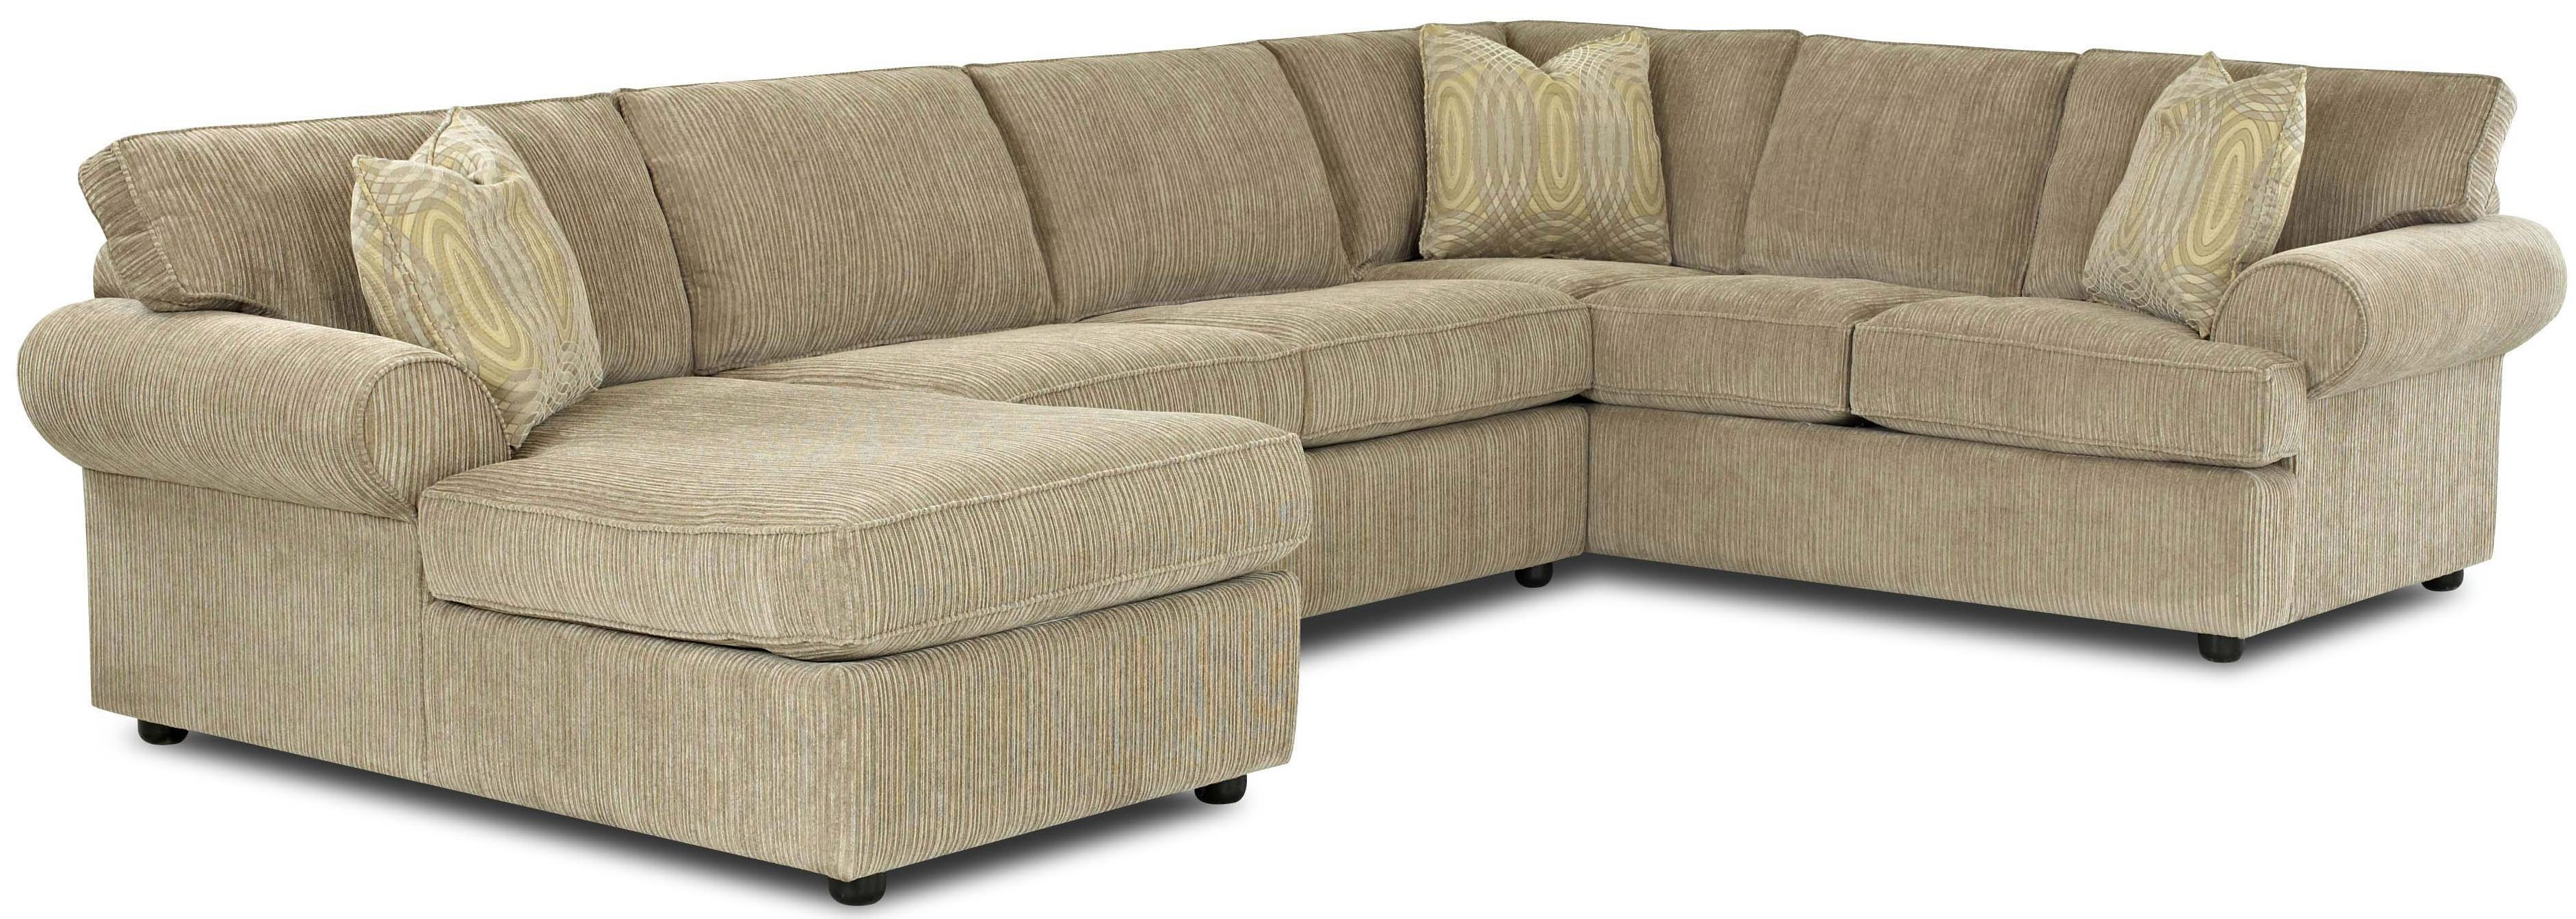 Sofas : Wonderful Sectional Sofas With Recliners Loveseat Sleeper With Regard To Sectional Sofas With Sleeper And Chaise (Image 17 of 21)